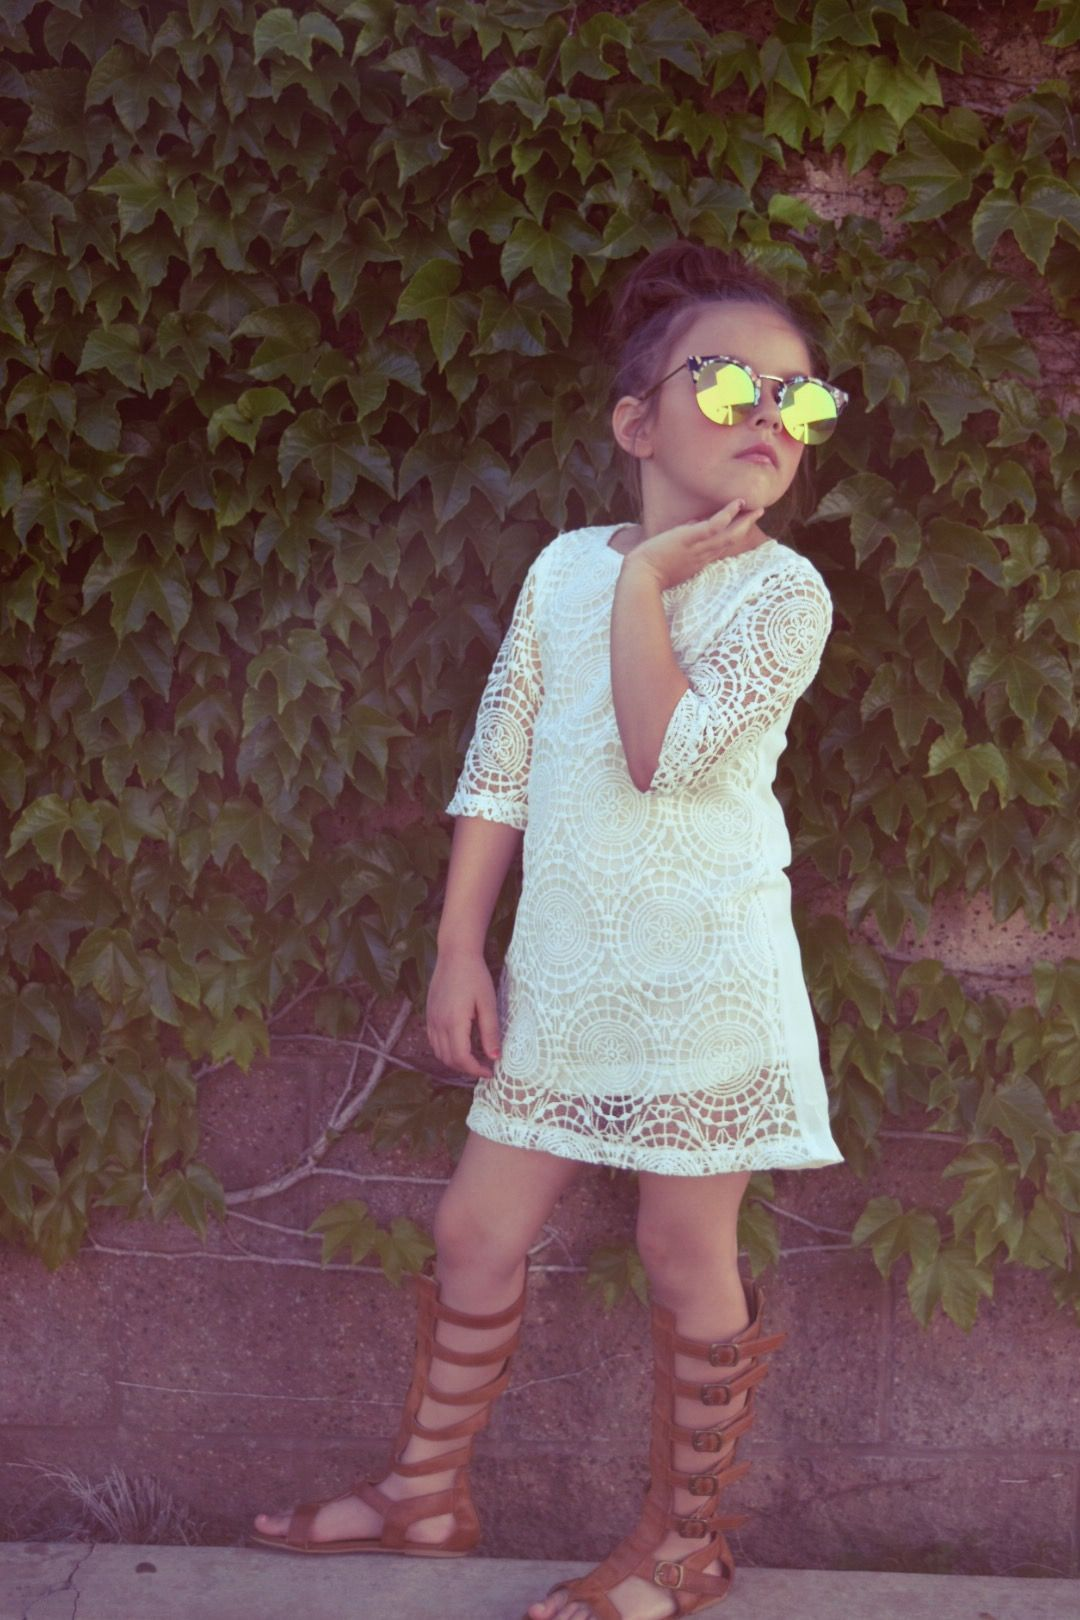 Beautiful crochet dresses for kids trendy - Lily Dress With Lace 32 Little Girls White Crochet Dress Bohemian Clothes For